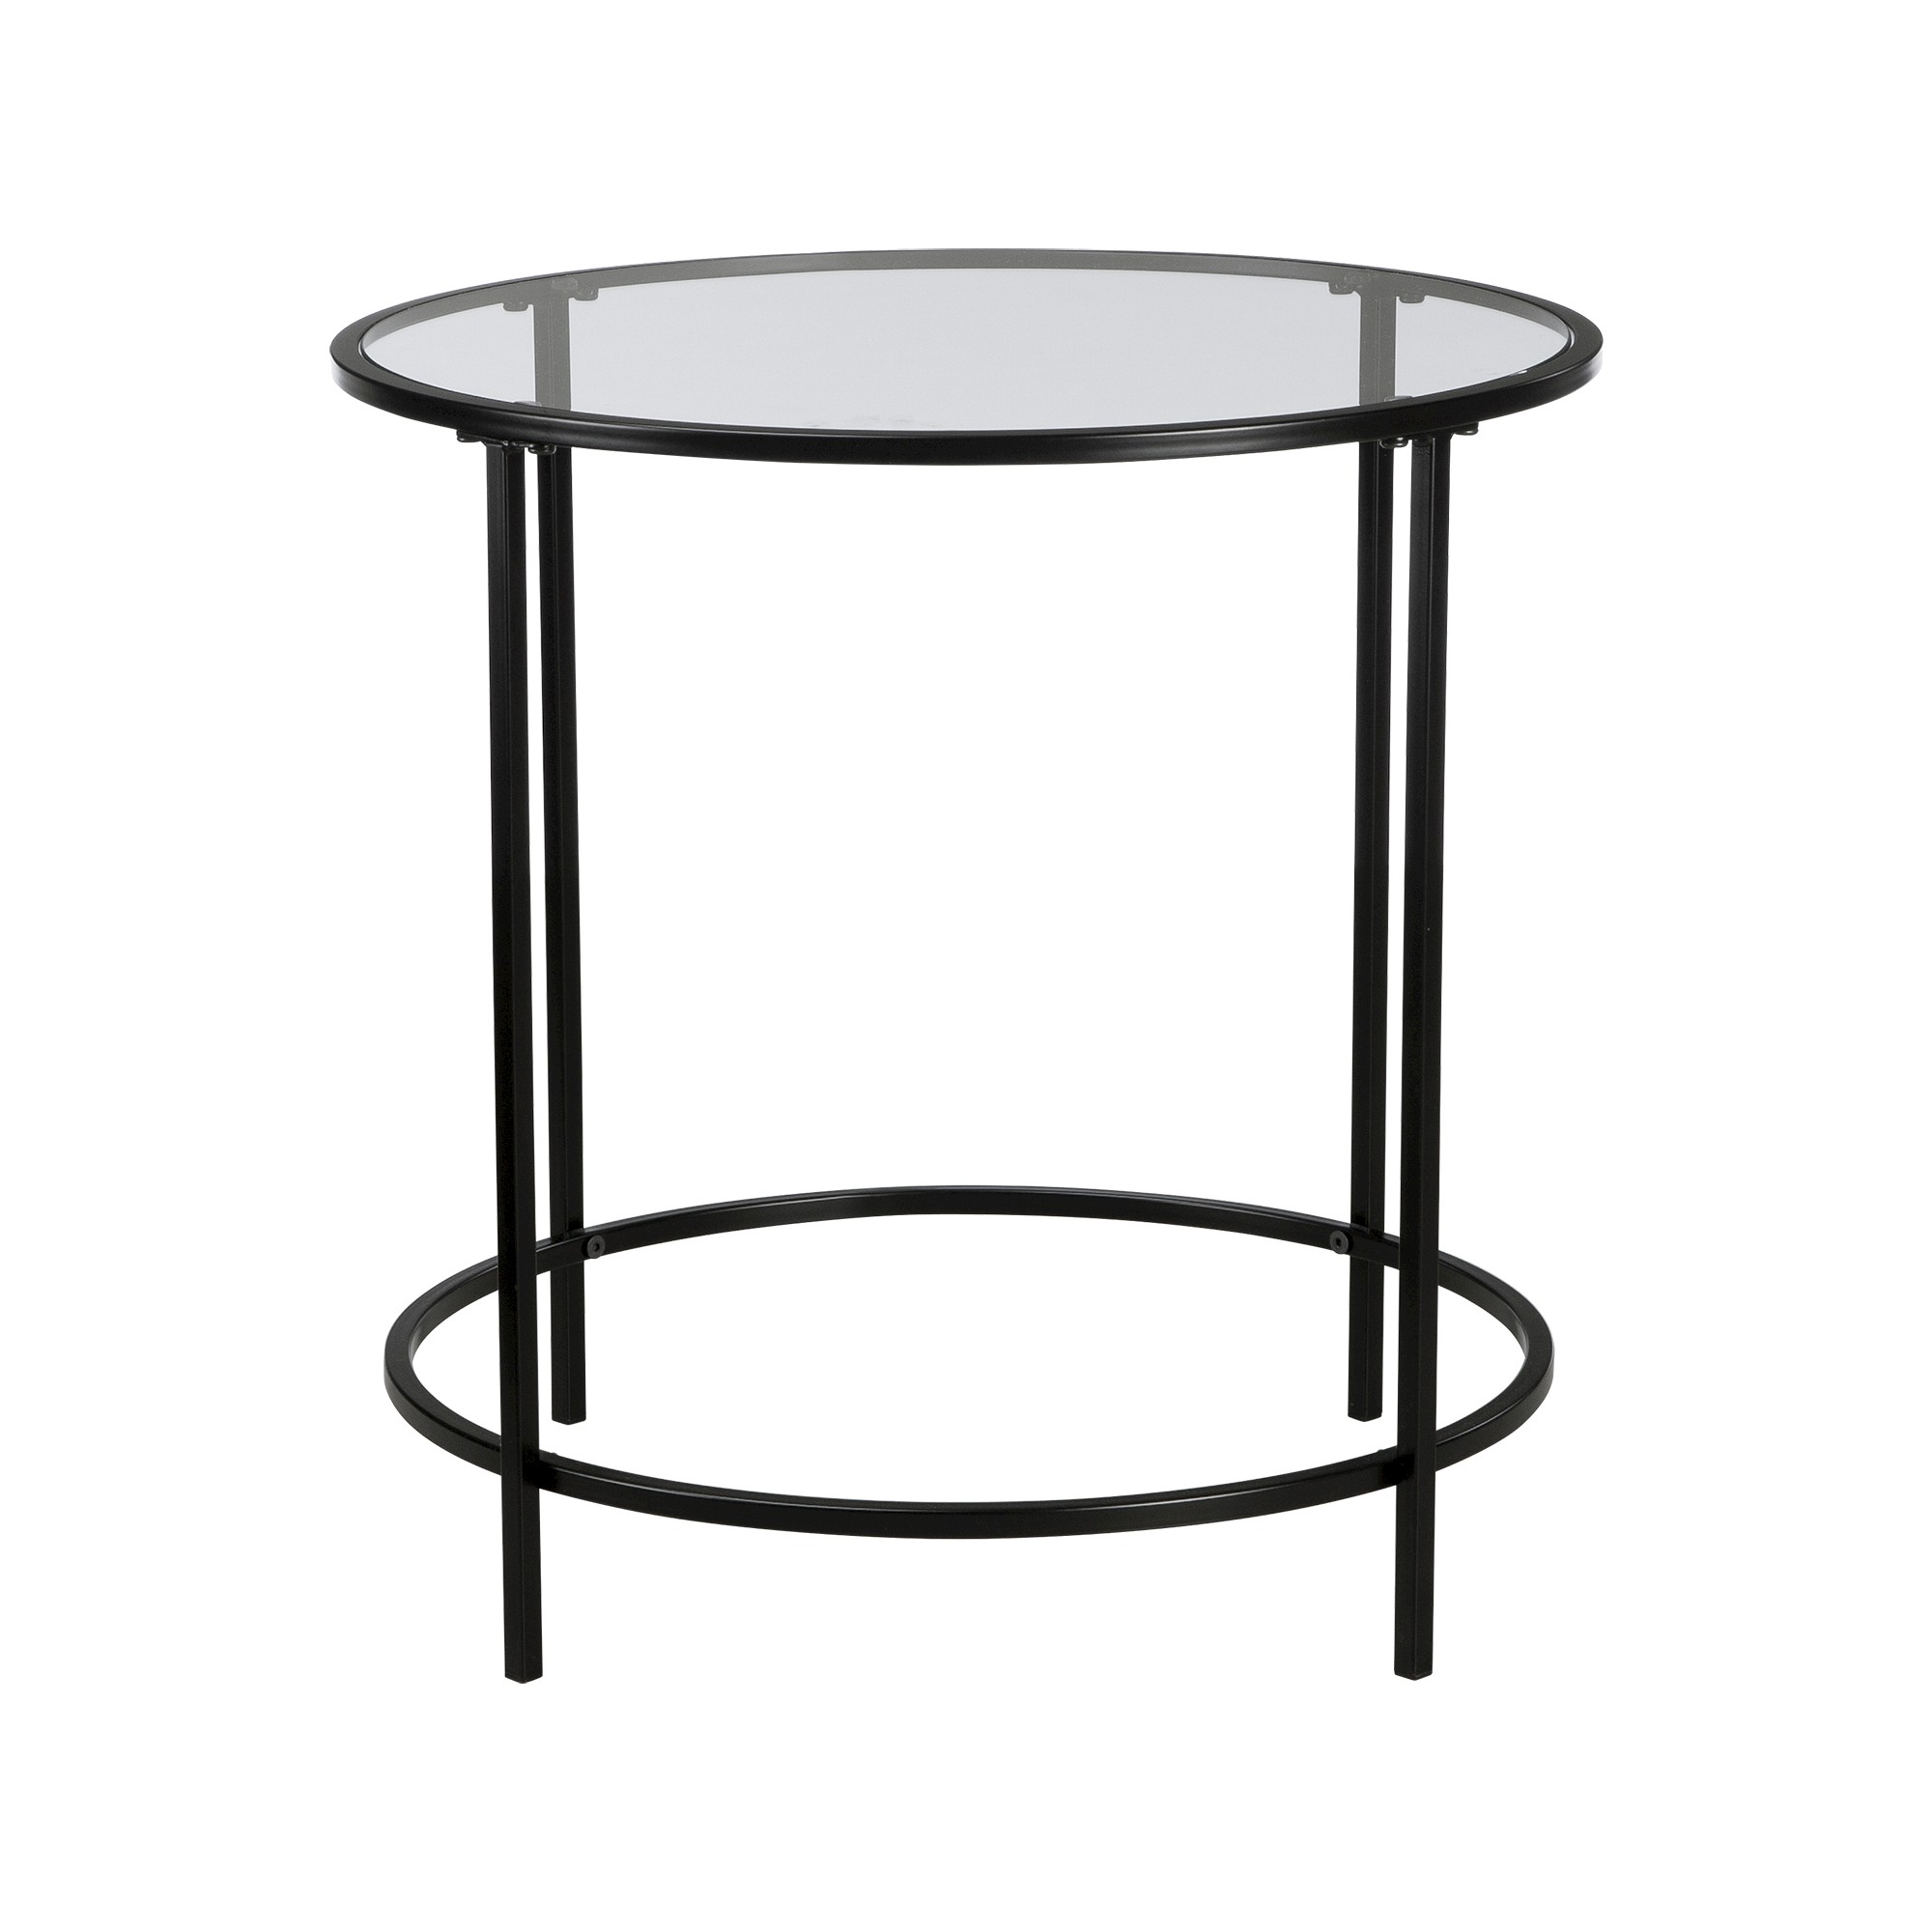 Soft Modern Round Side Table Black Clear Glass Sauder Black Side Table Round Side Table Black Round Side Table